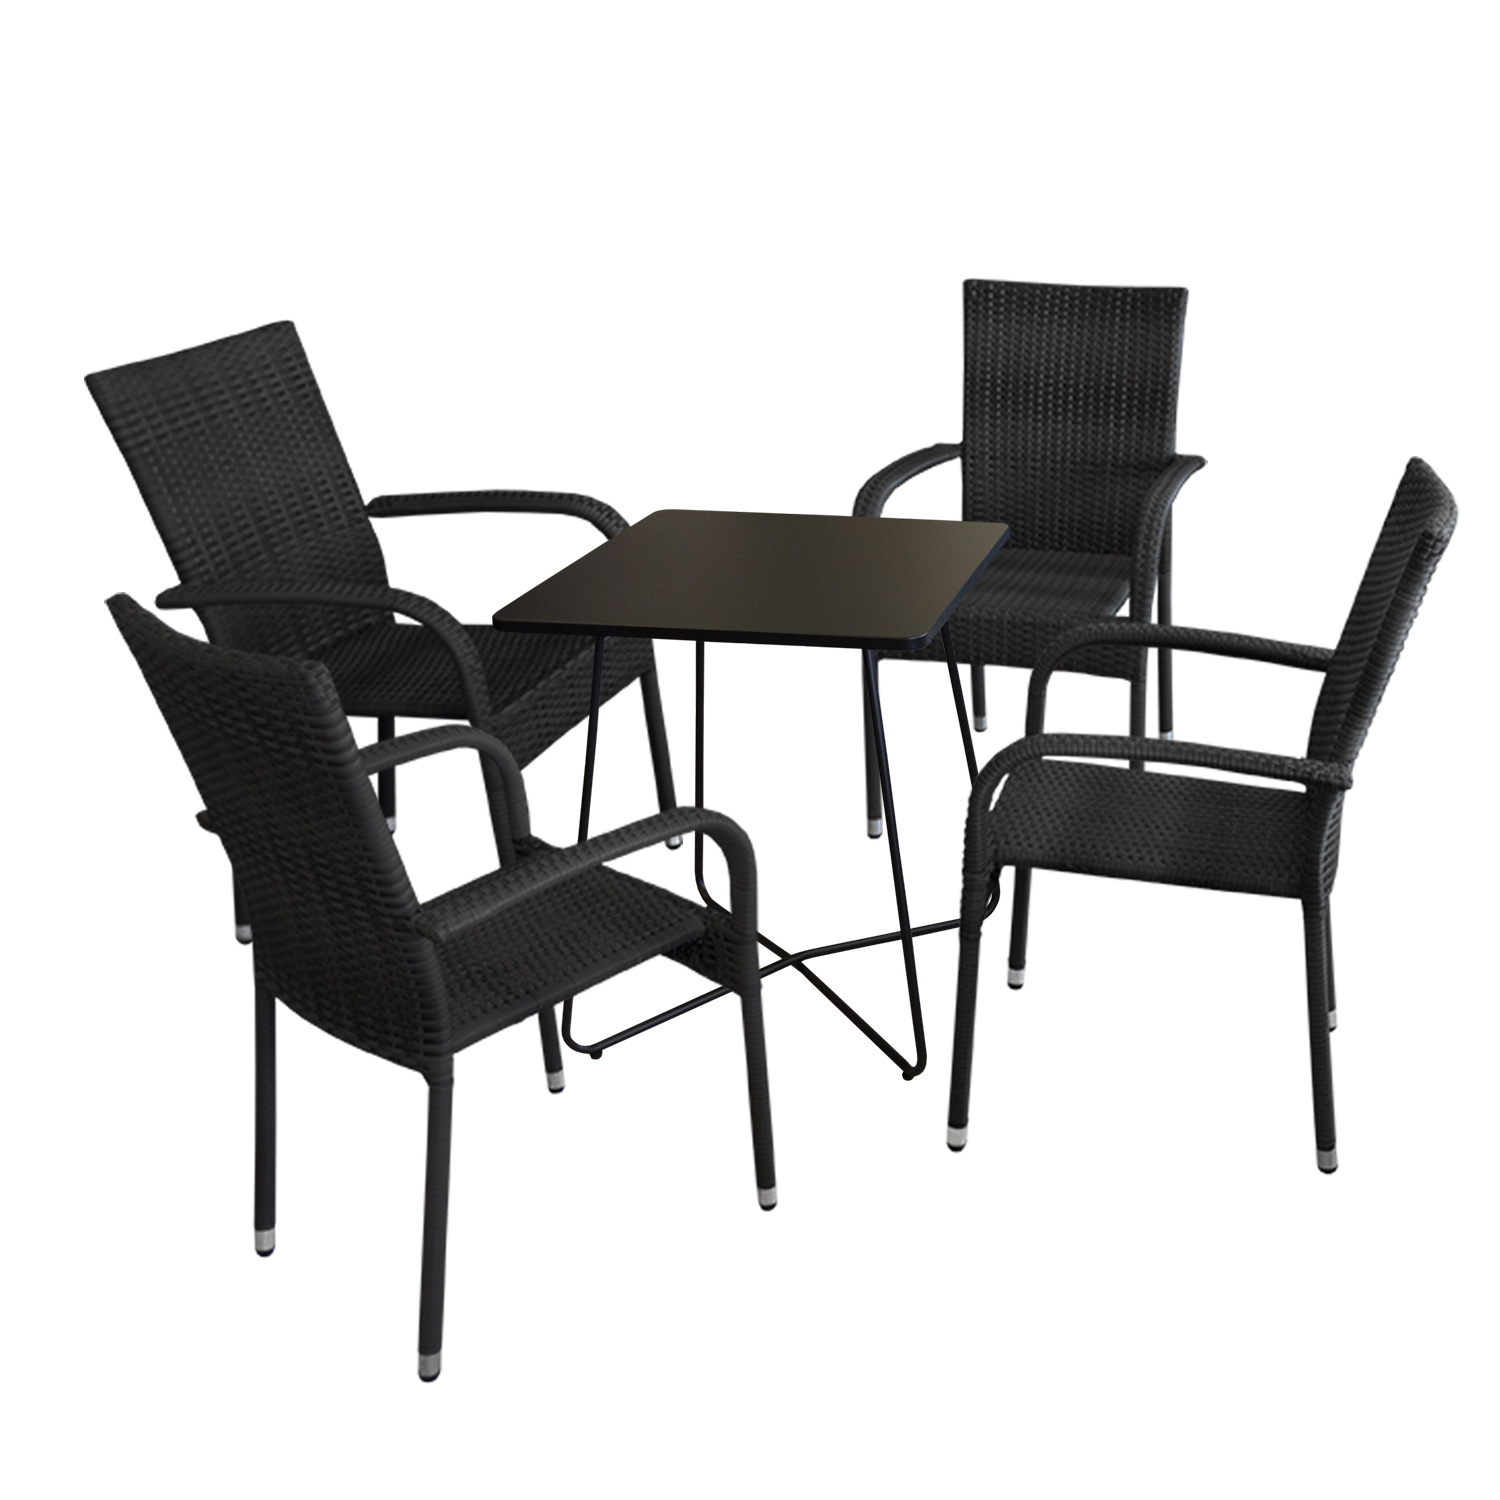 5tlg balkonm bel set bistrotisch 60x60cm schwarz 4x rattan gartensessel schwarz garten. Black Bedroom Furniture Sets. Home Design Ideas